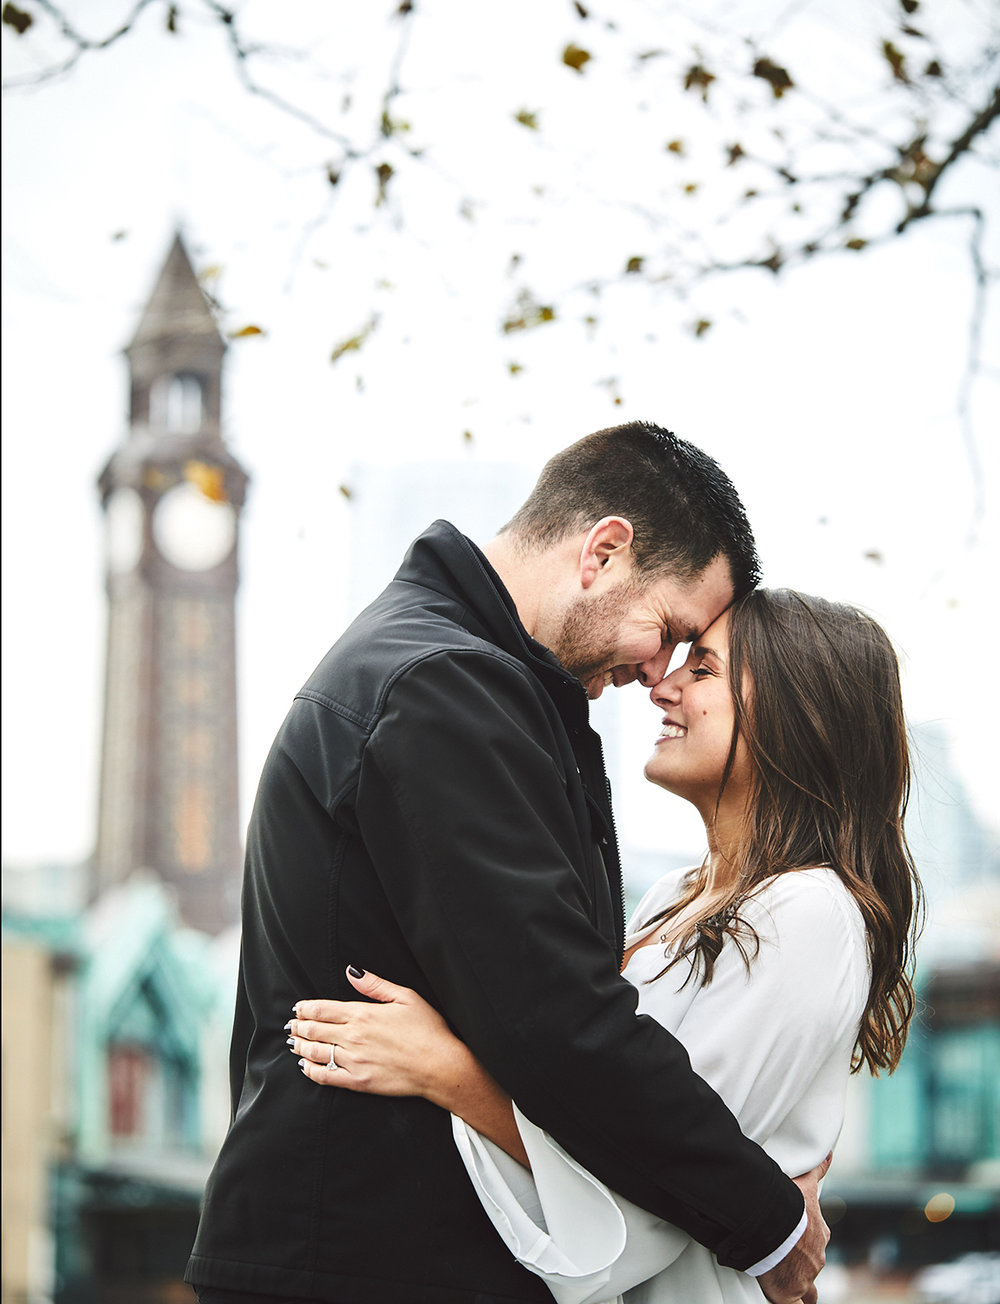 171101_HobokenEngagementPhotography_NYCEngagementPhotography_By_BriJohnsonWeddings_0008.jpg